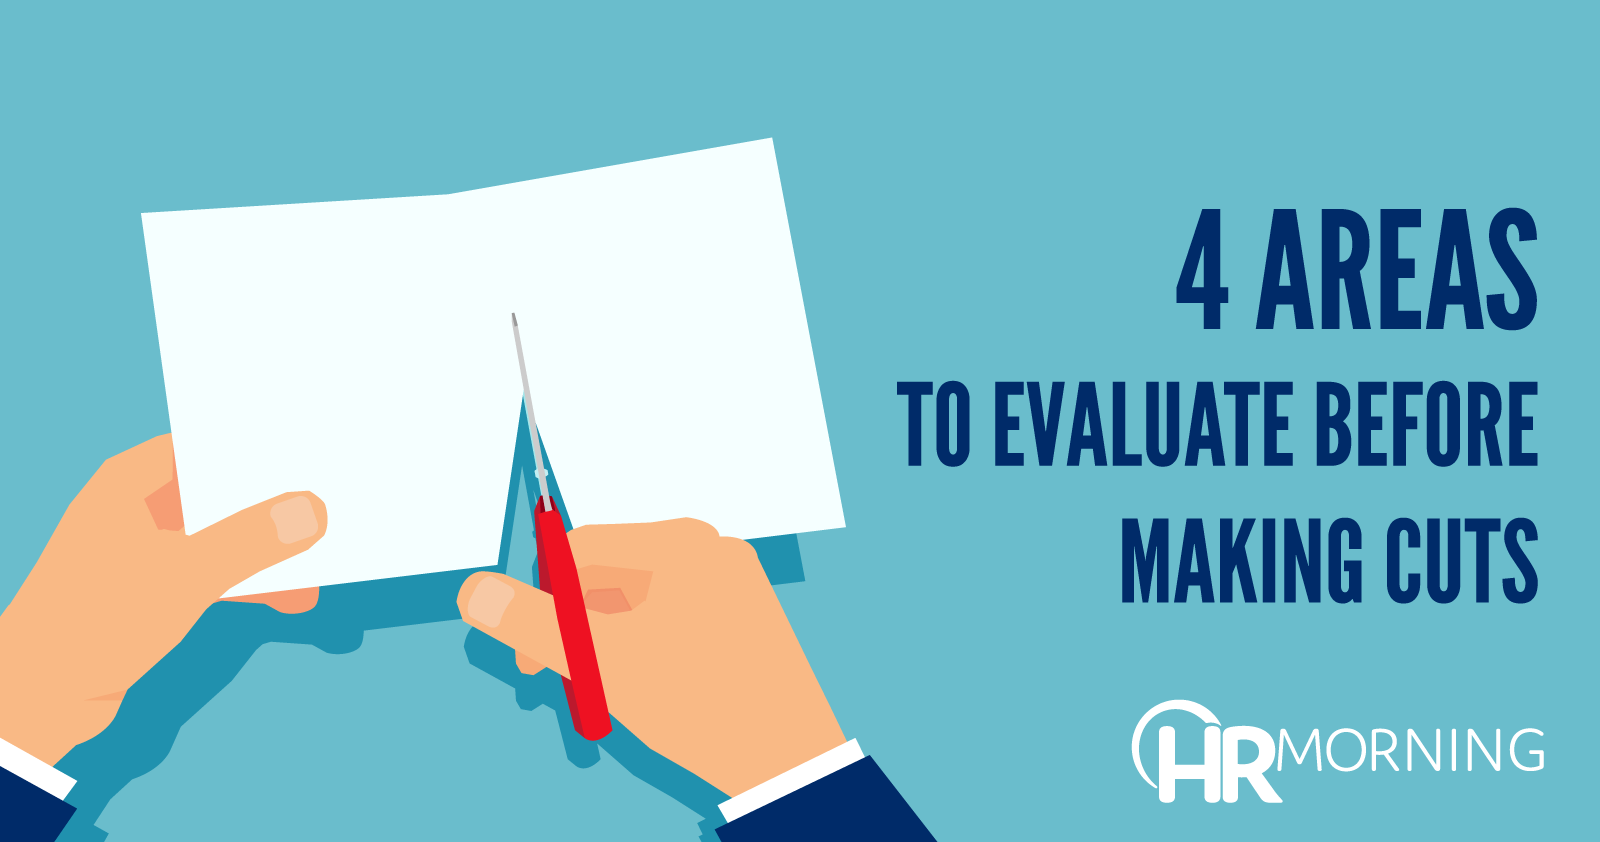 4 areas to evaluate before making cuts